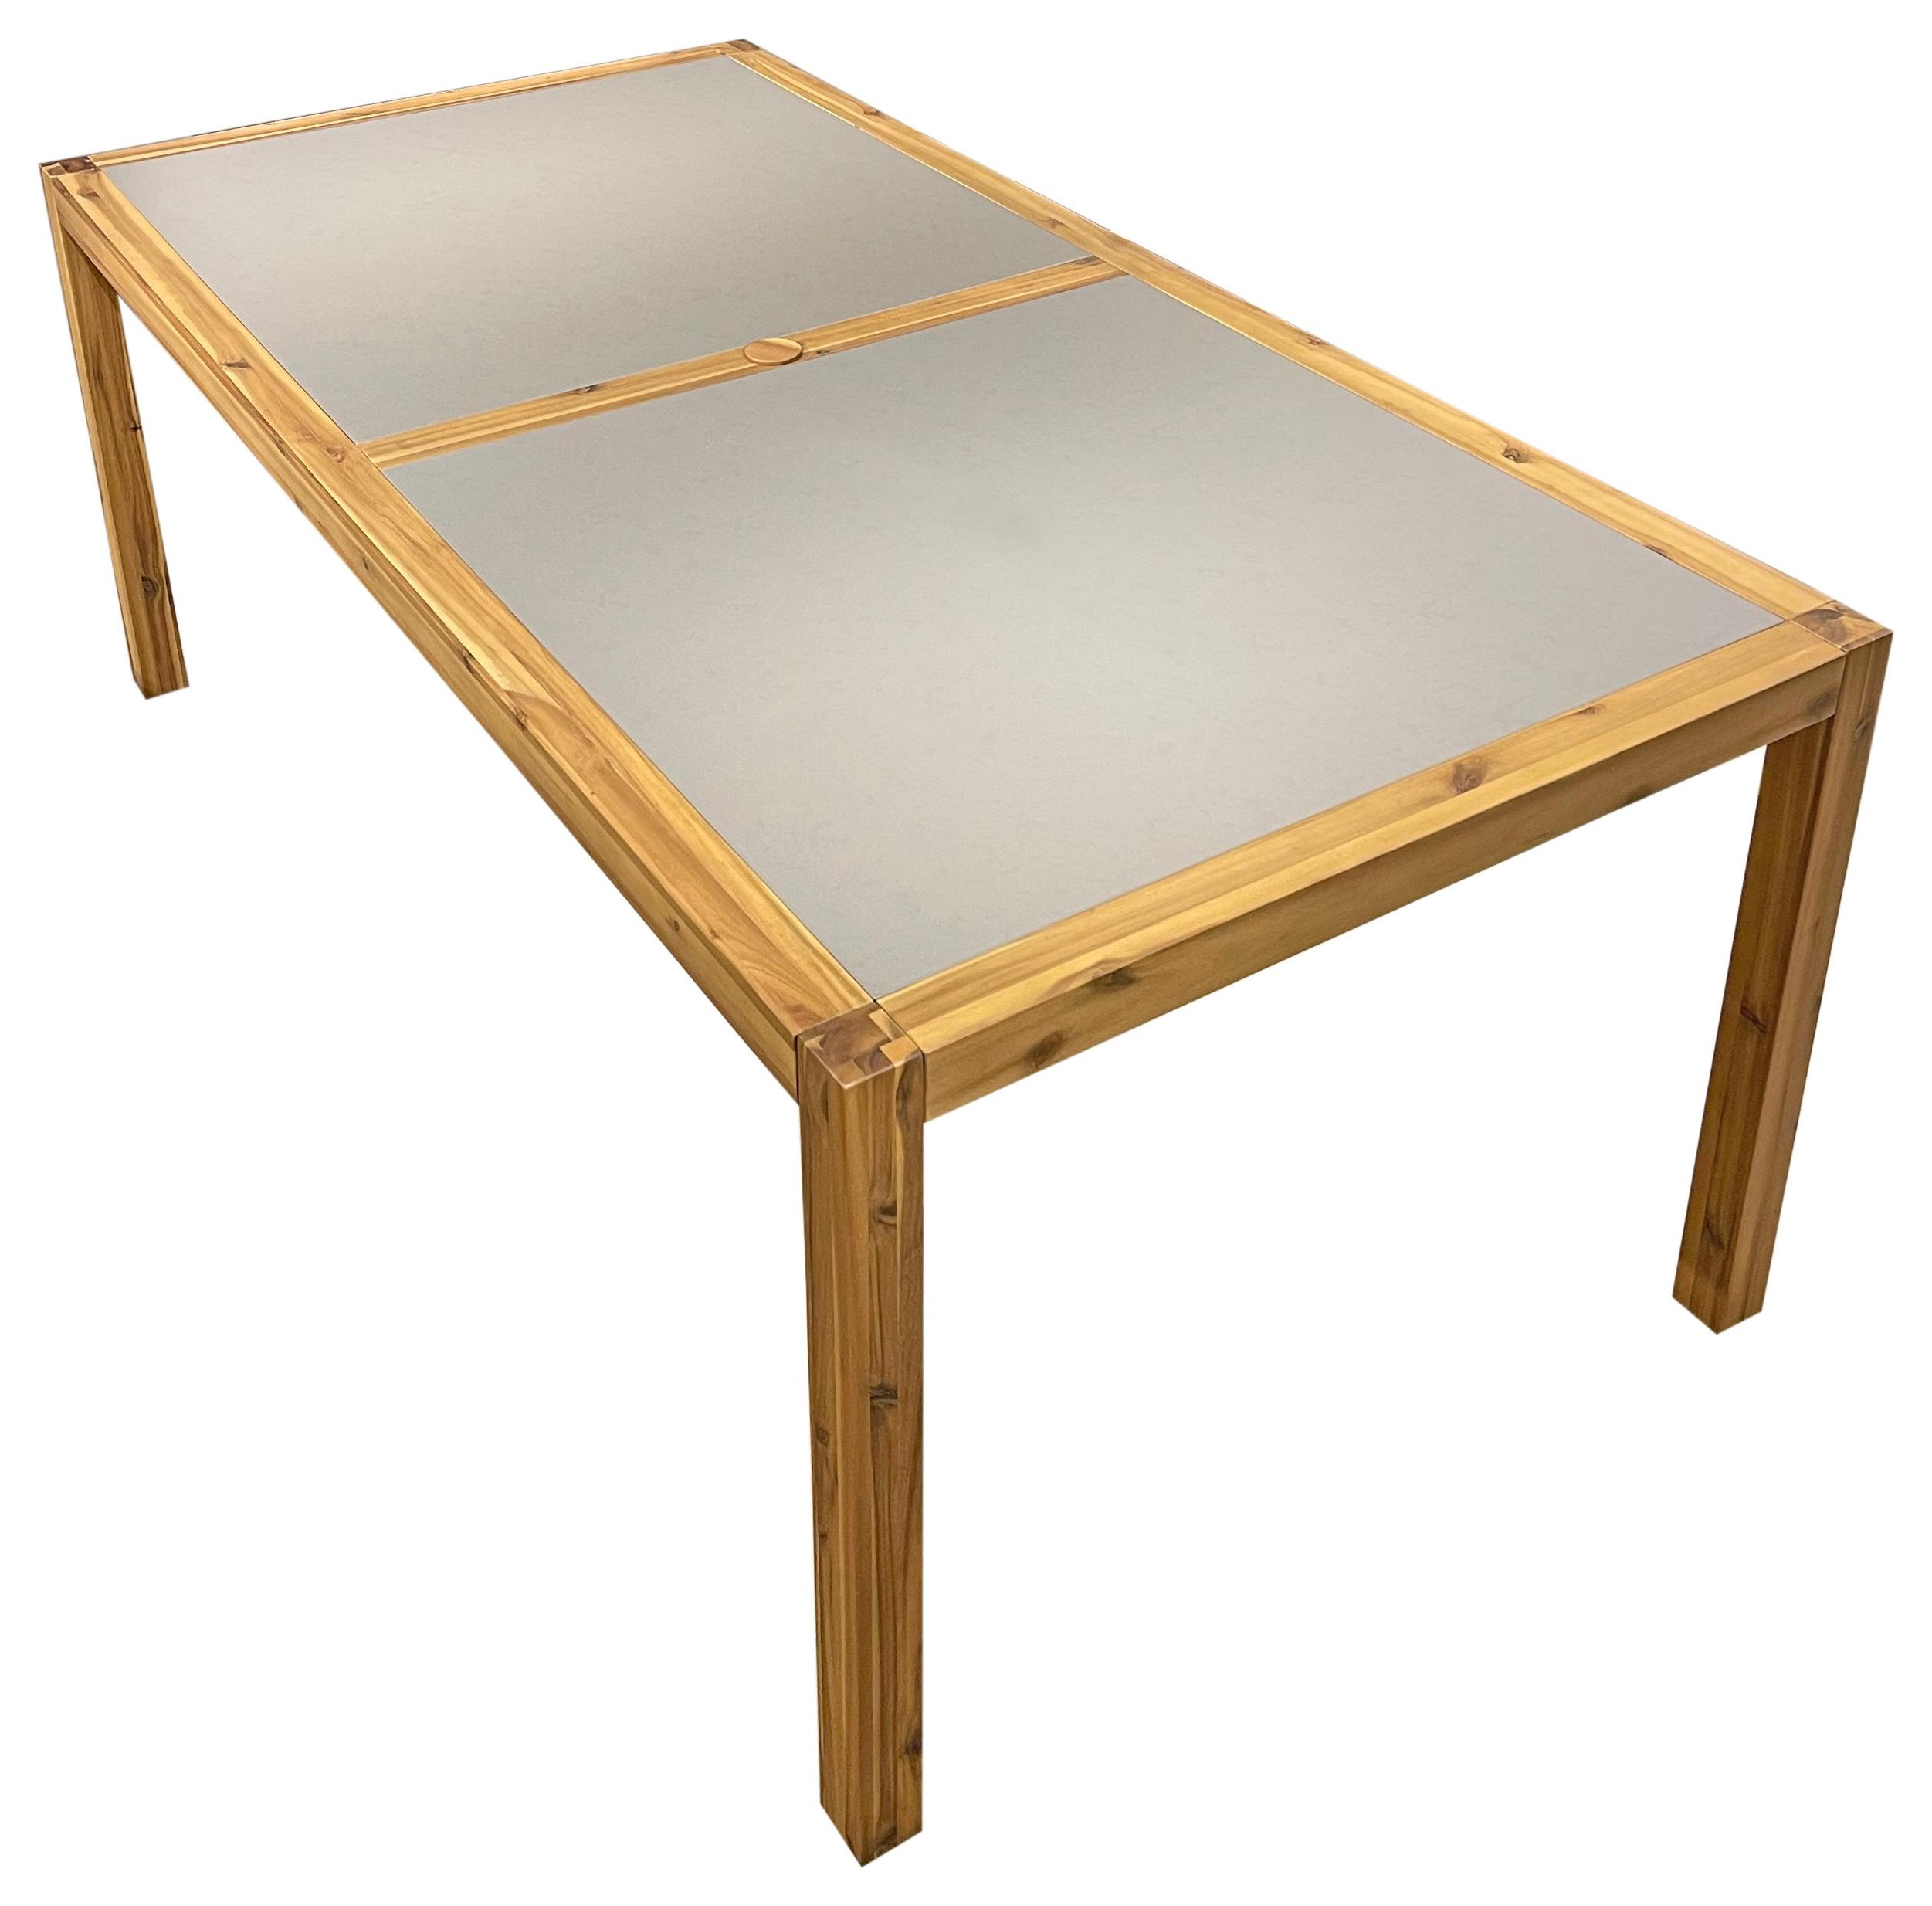 Sienna Dining Table by Design Evolution at Red Knot